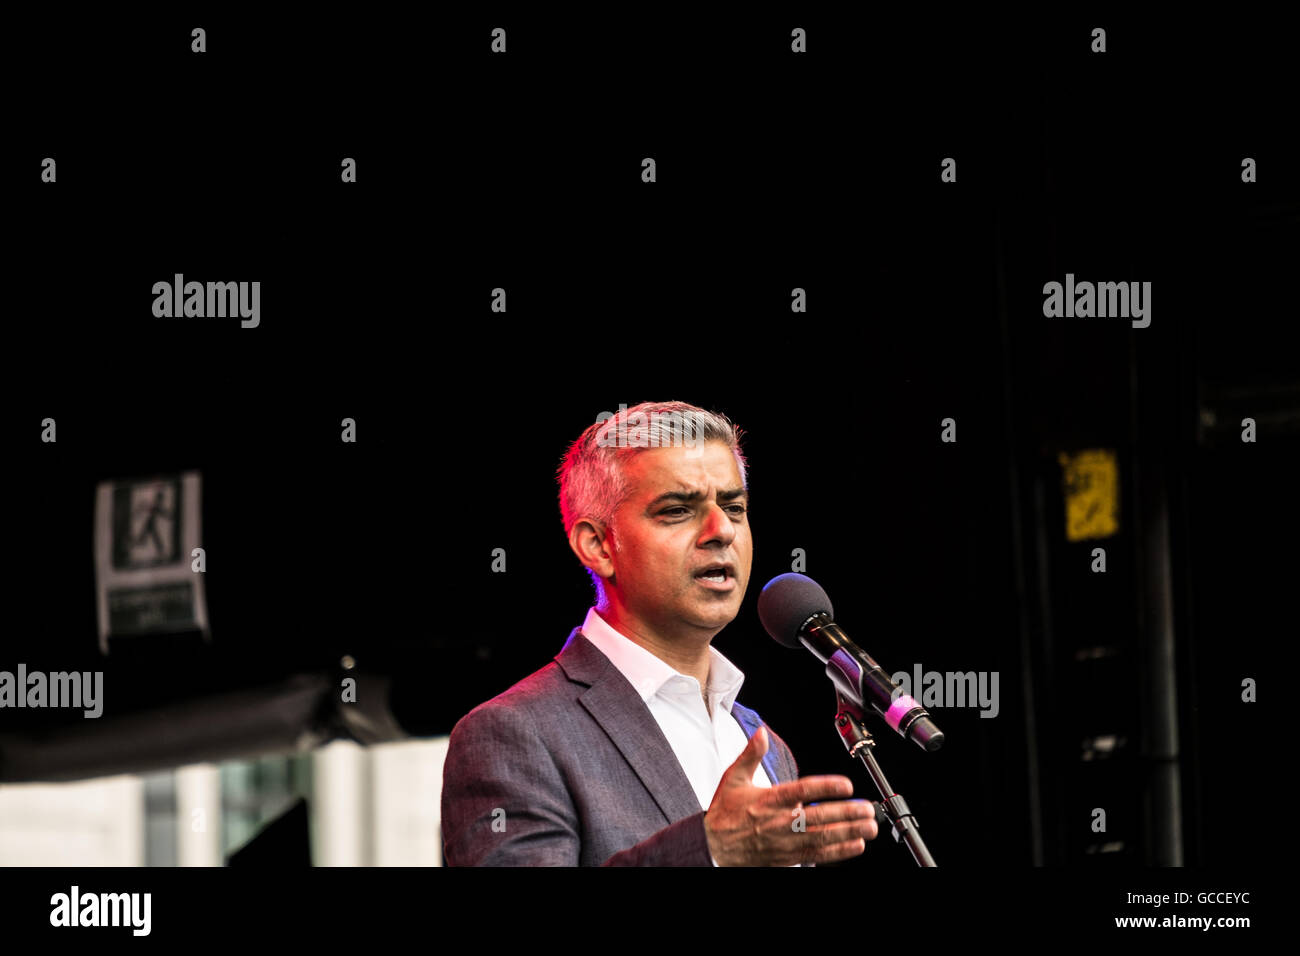 London, UK. 9th July, 2016.  Mayor of London, Sadiq Khan, addresses large crowds on stage at the EID festival in - Stock Image